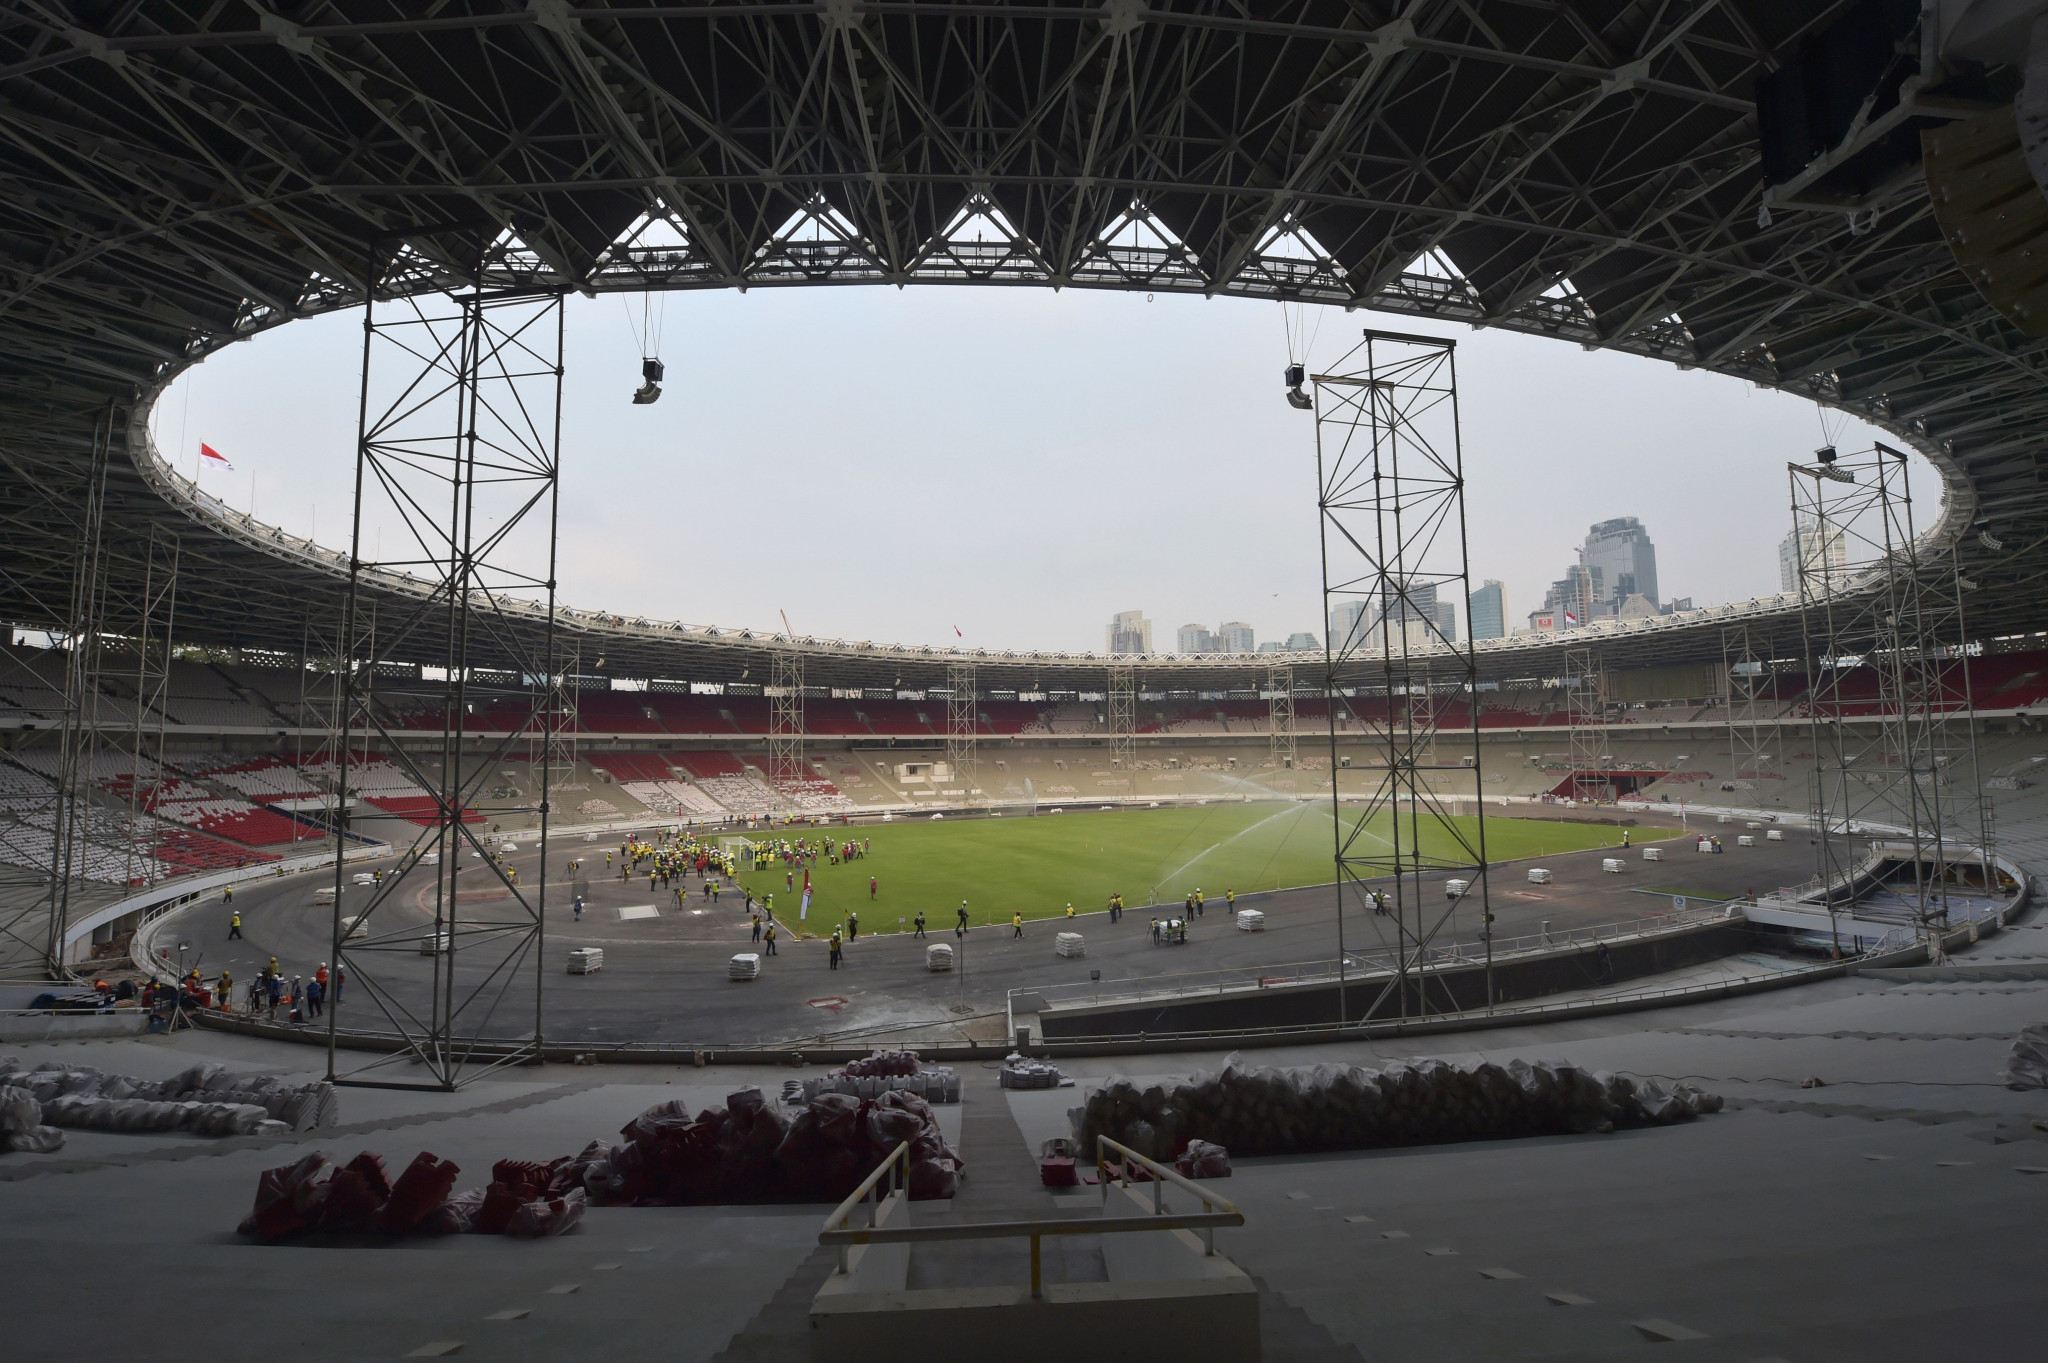 Renovations were carried out at the Gelora Bung Karno Stadium ©Getty Images